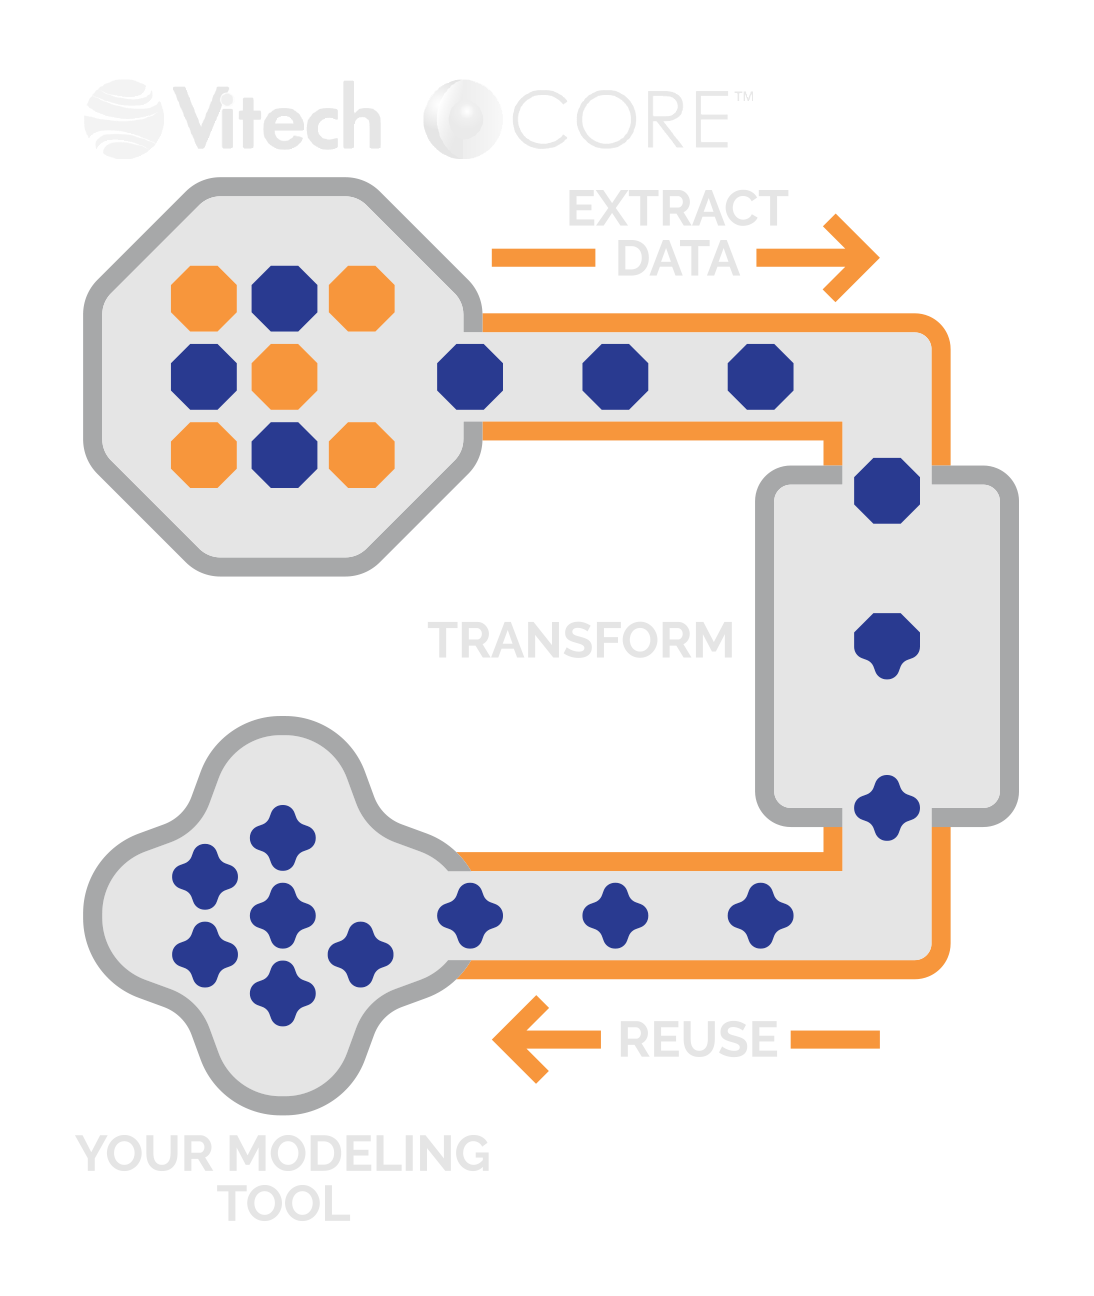 sodius diagram vitech core